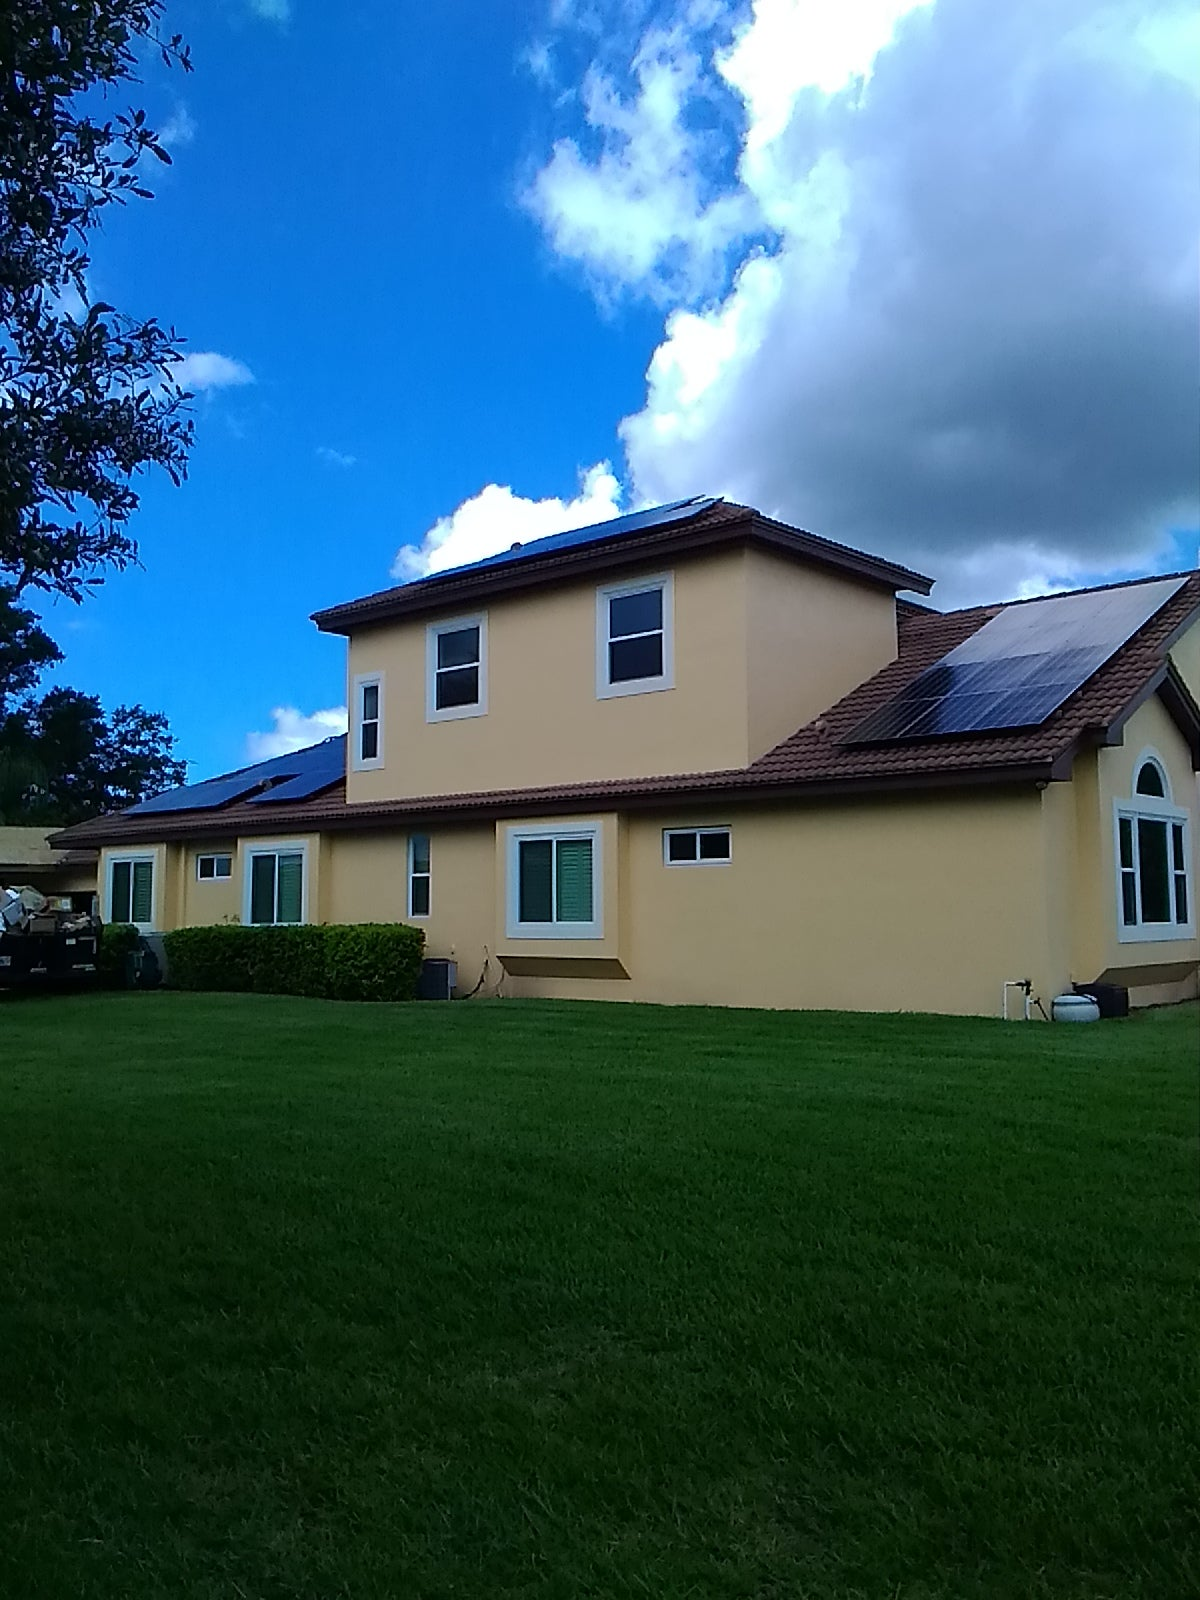 Are LG solar panels the best solar panels to buy?   SolarReviews